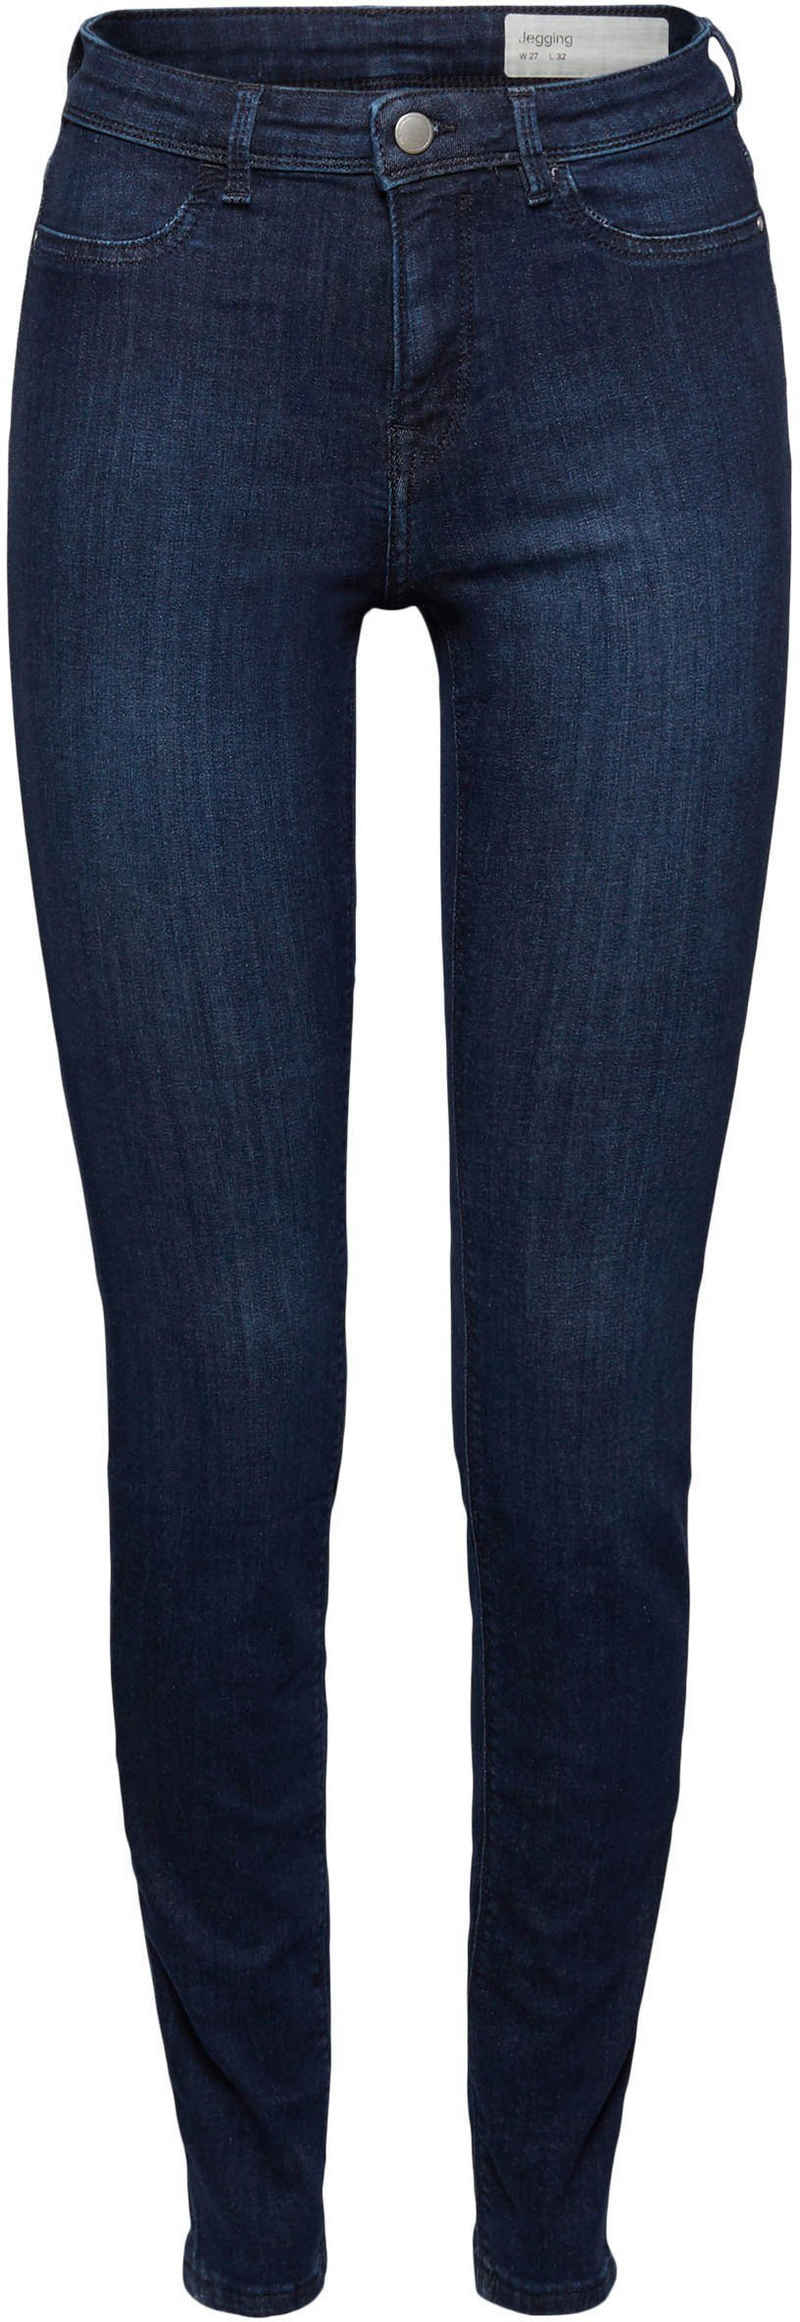 edc by Esprit Skinny-fit-Jeans in cleaner Waschung